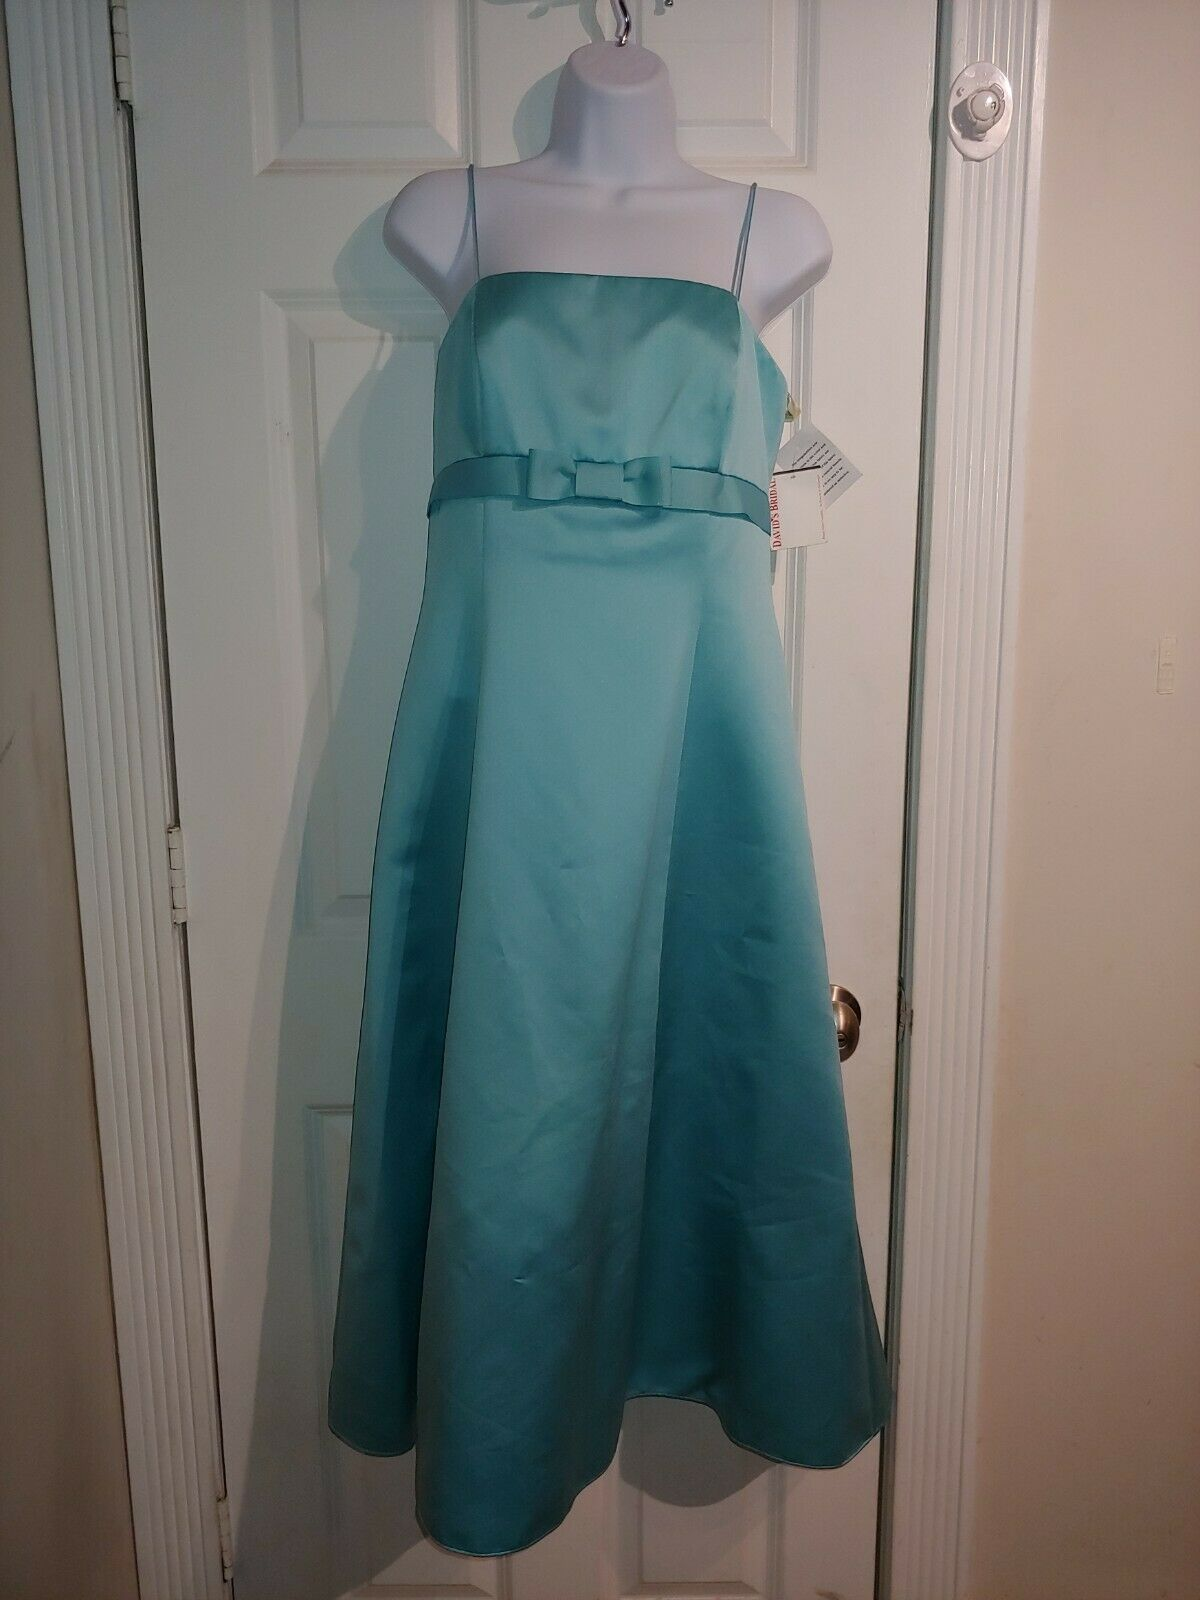 David's Bridal Turquoise With Bow Formal Dress Sz 8 Gorgeous! NWT